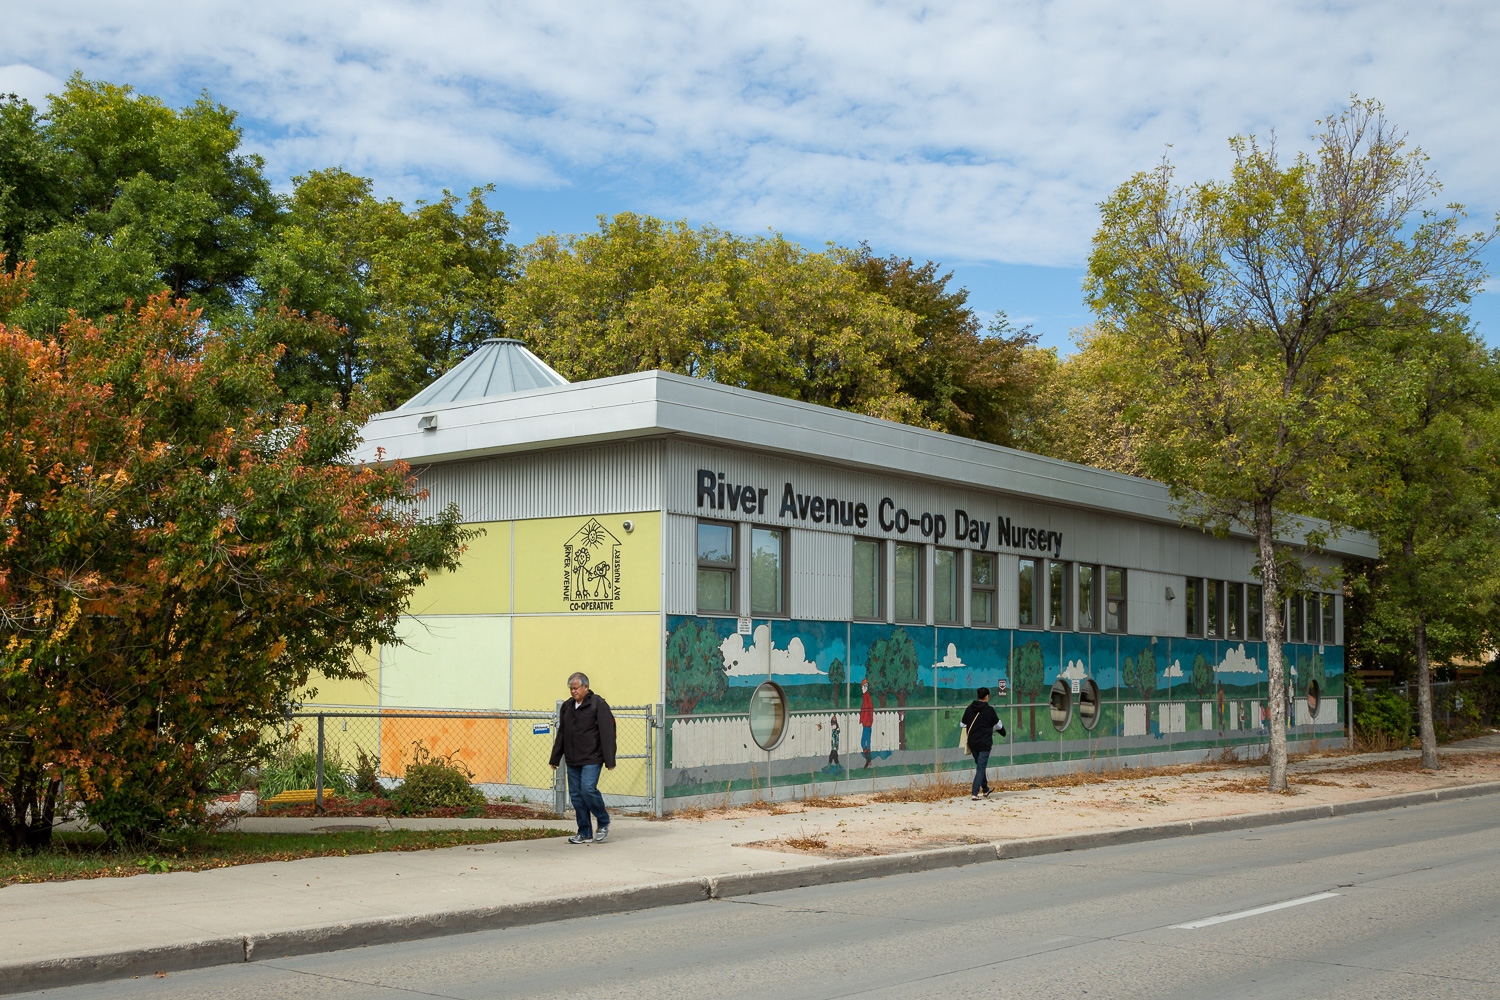 River Avenue Daycare, exterior photo of building with people walking by / Photo:  Lindsay Reid